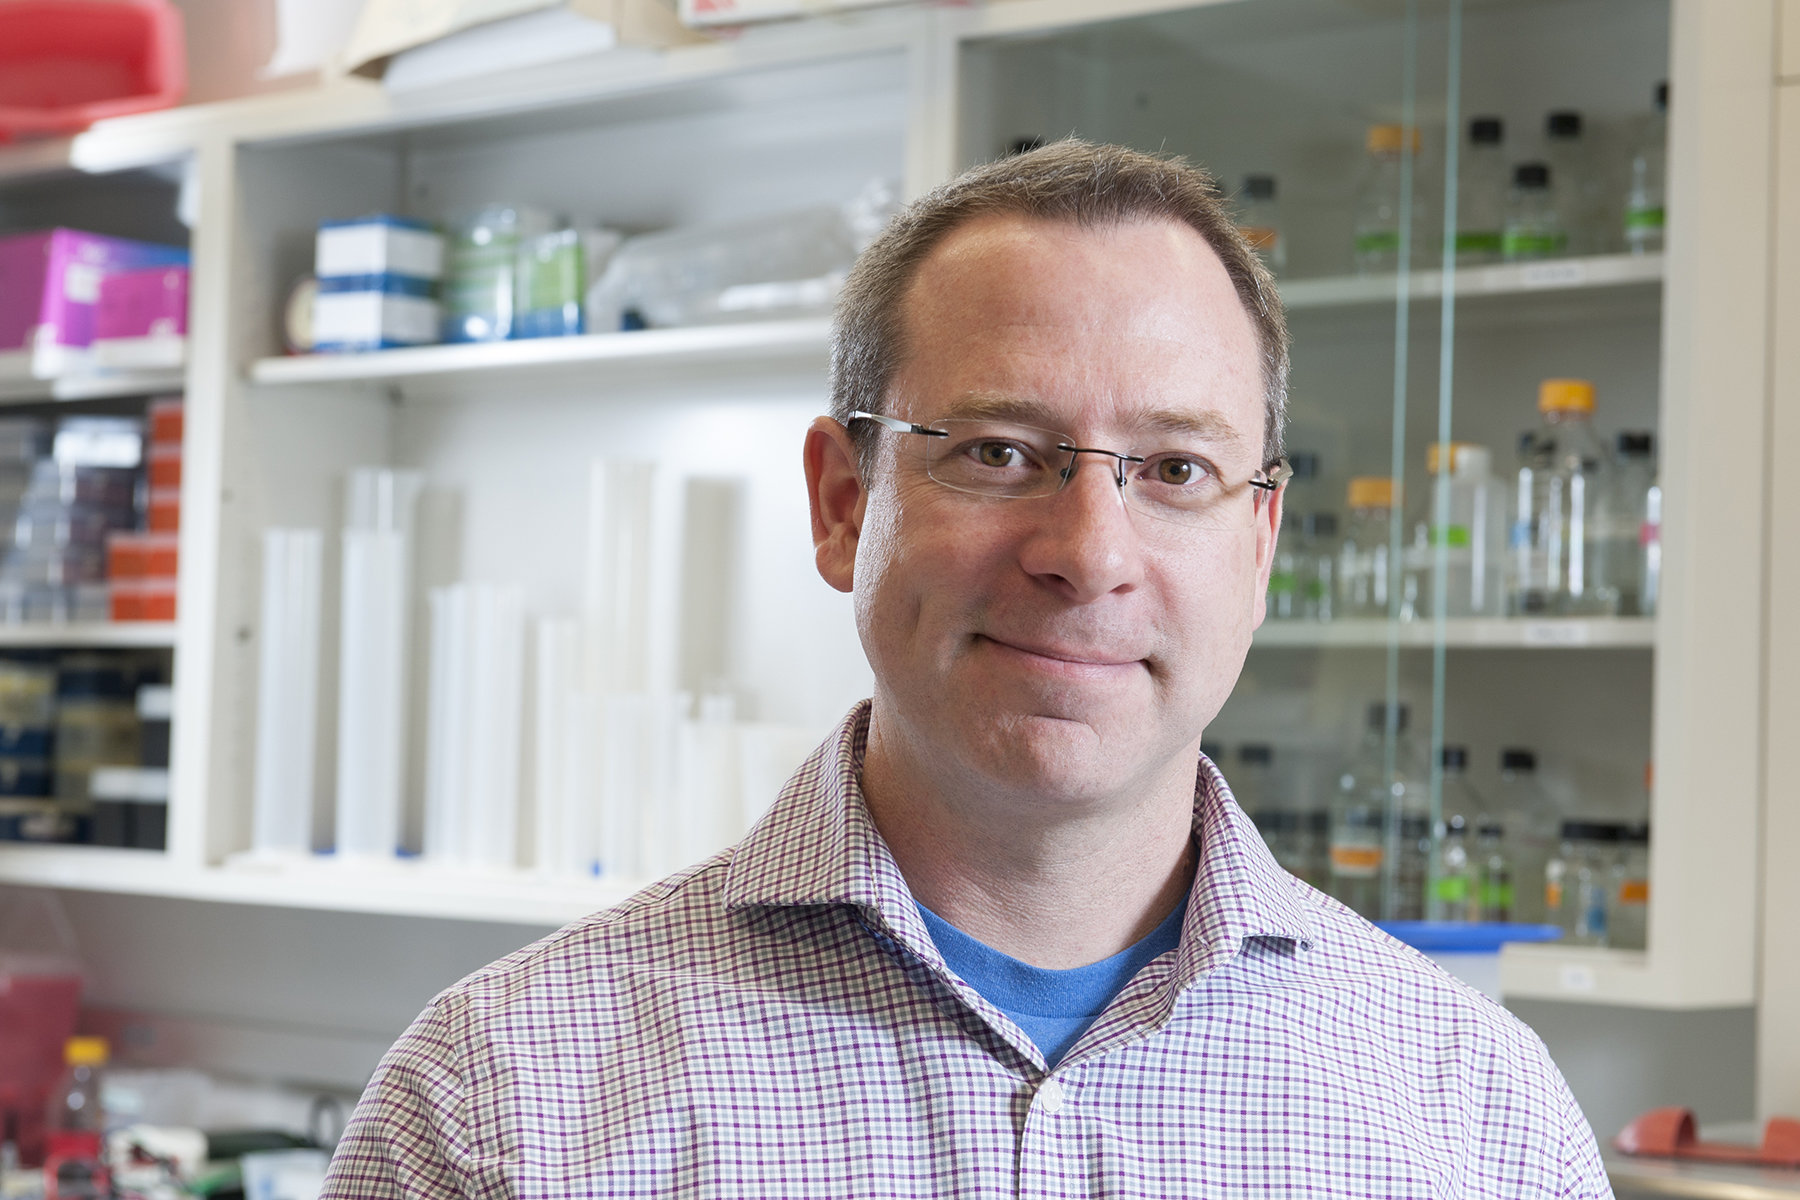 New compound may stop bacteria from causing sickness